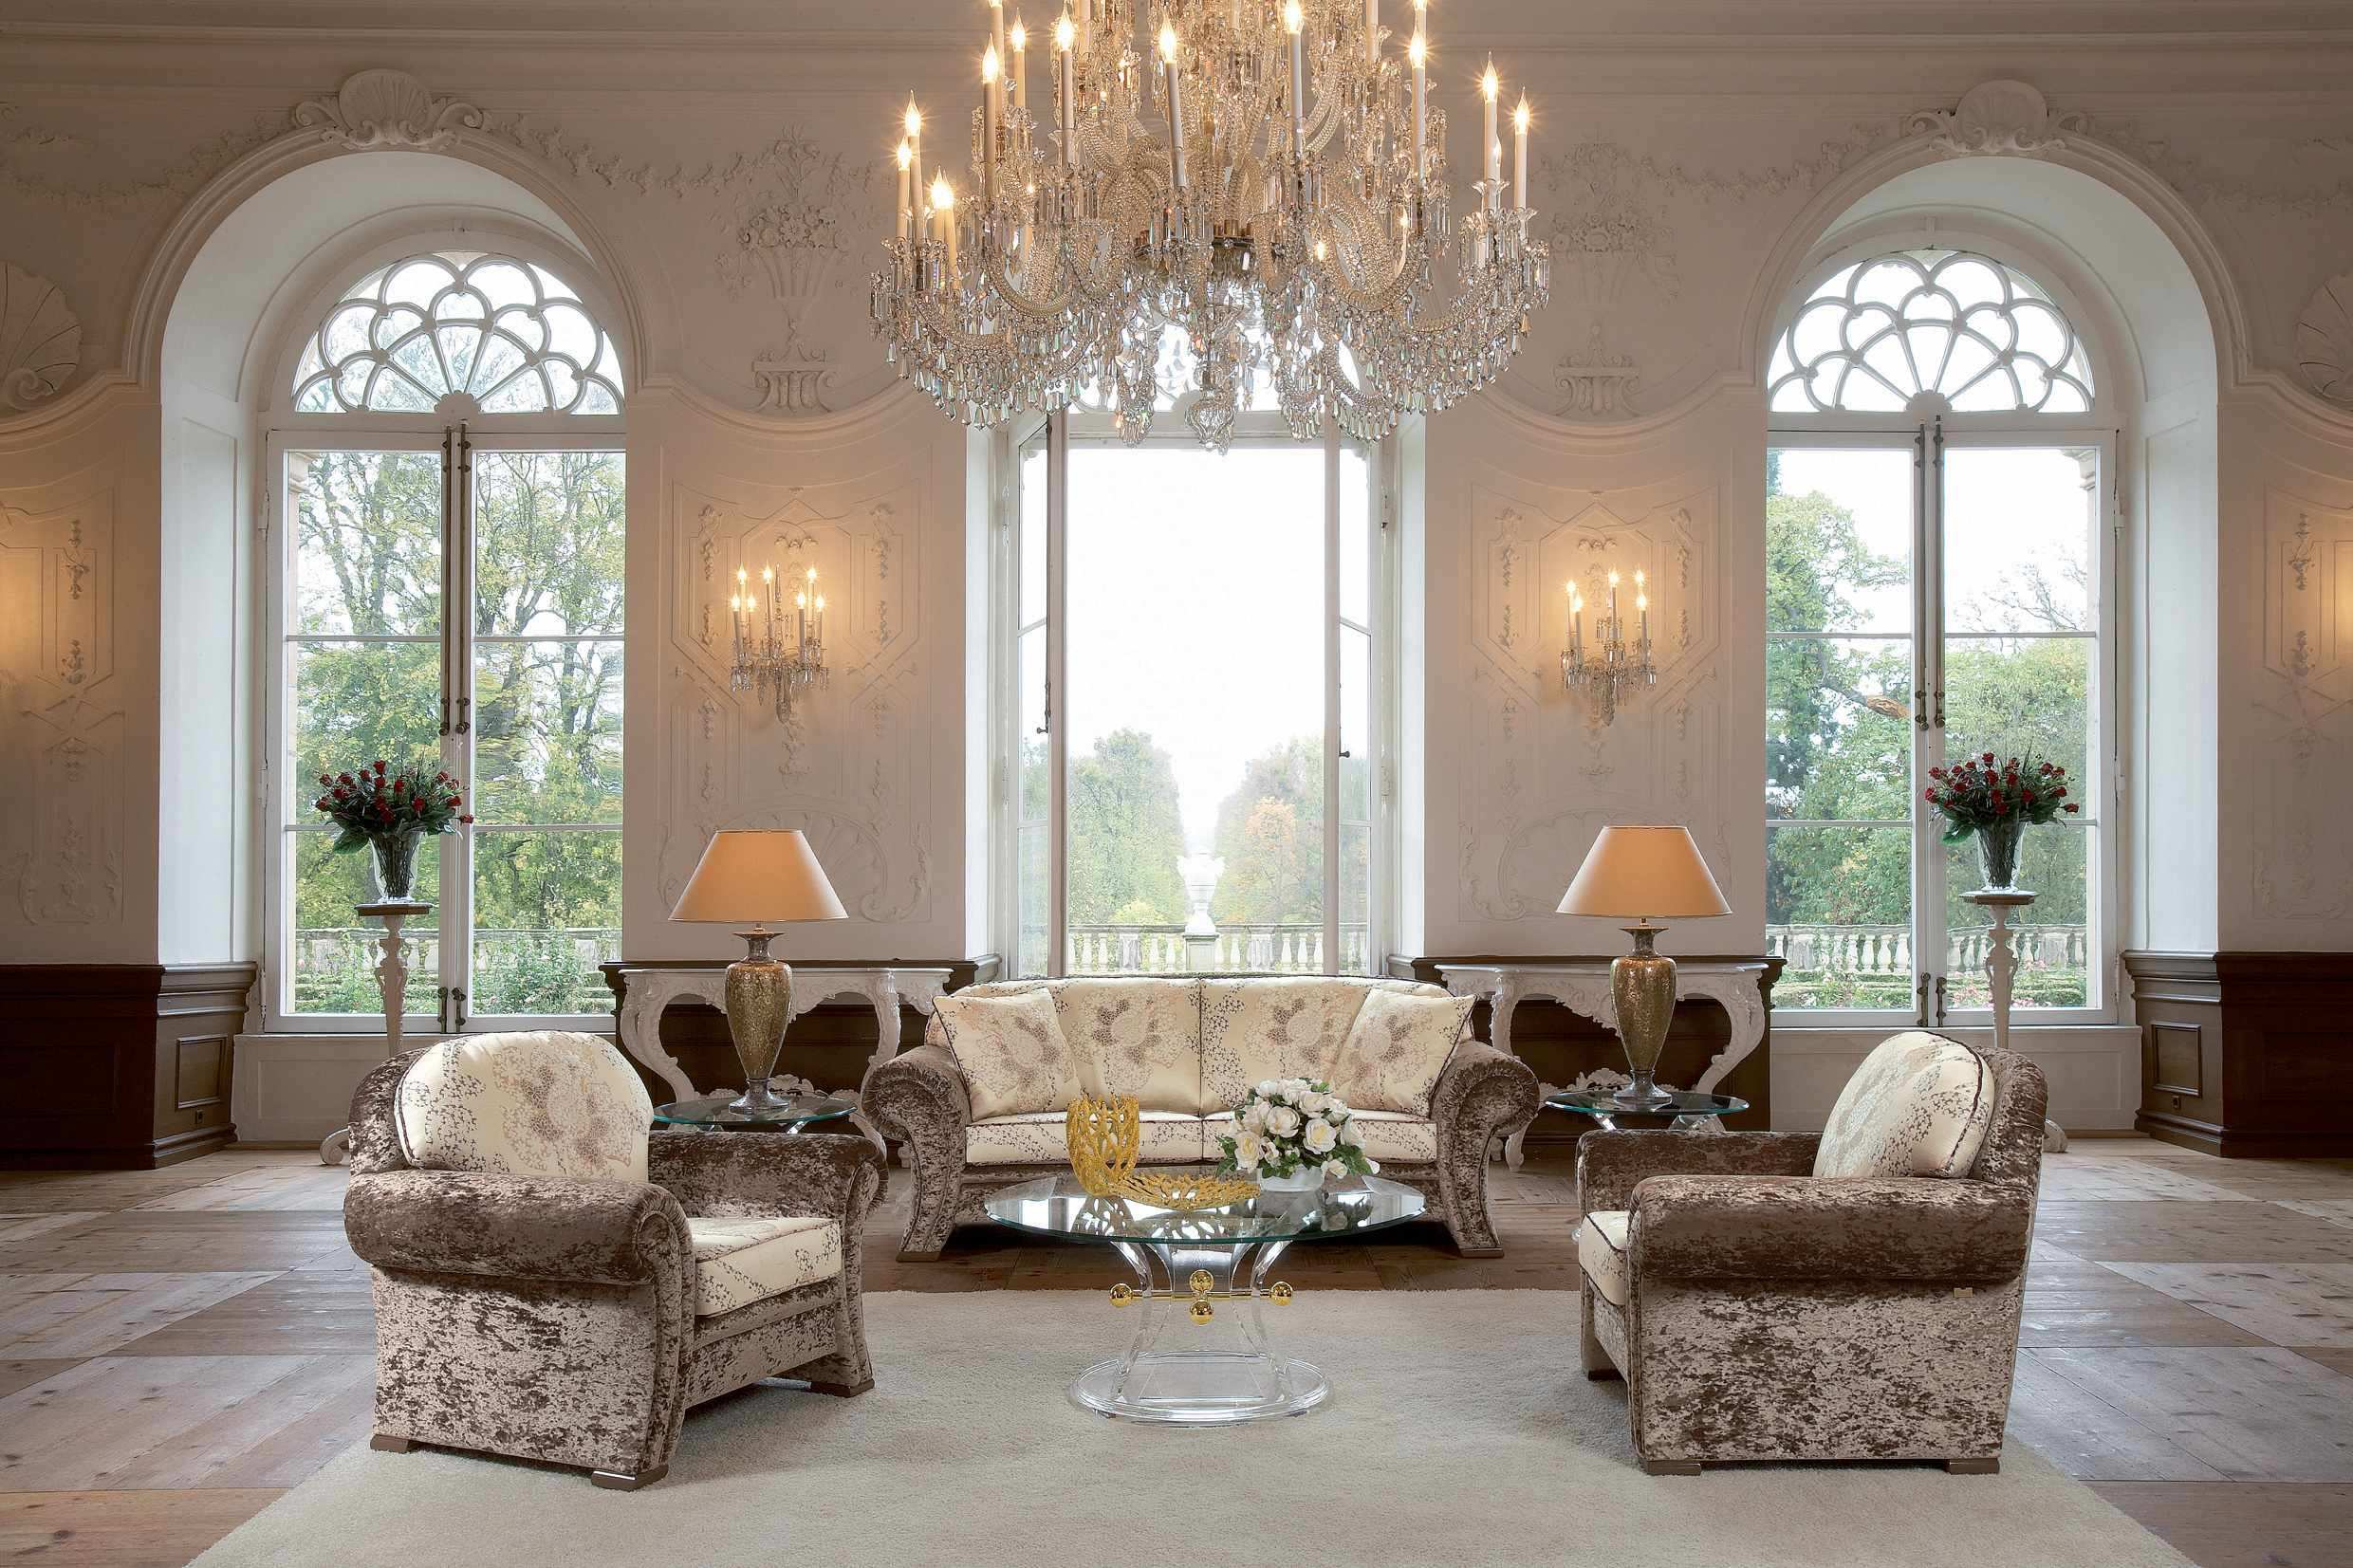 amazing living rooms pictures ideas for room furniture 20 of the world s most home interior design plans